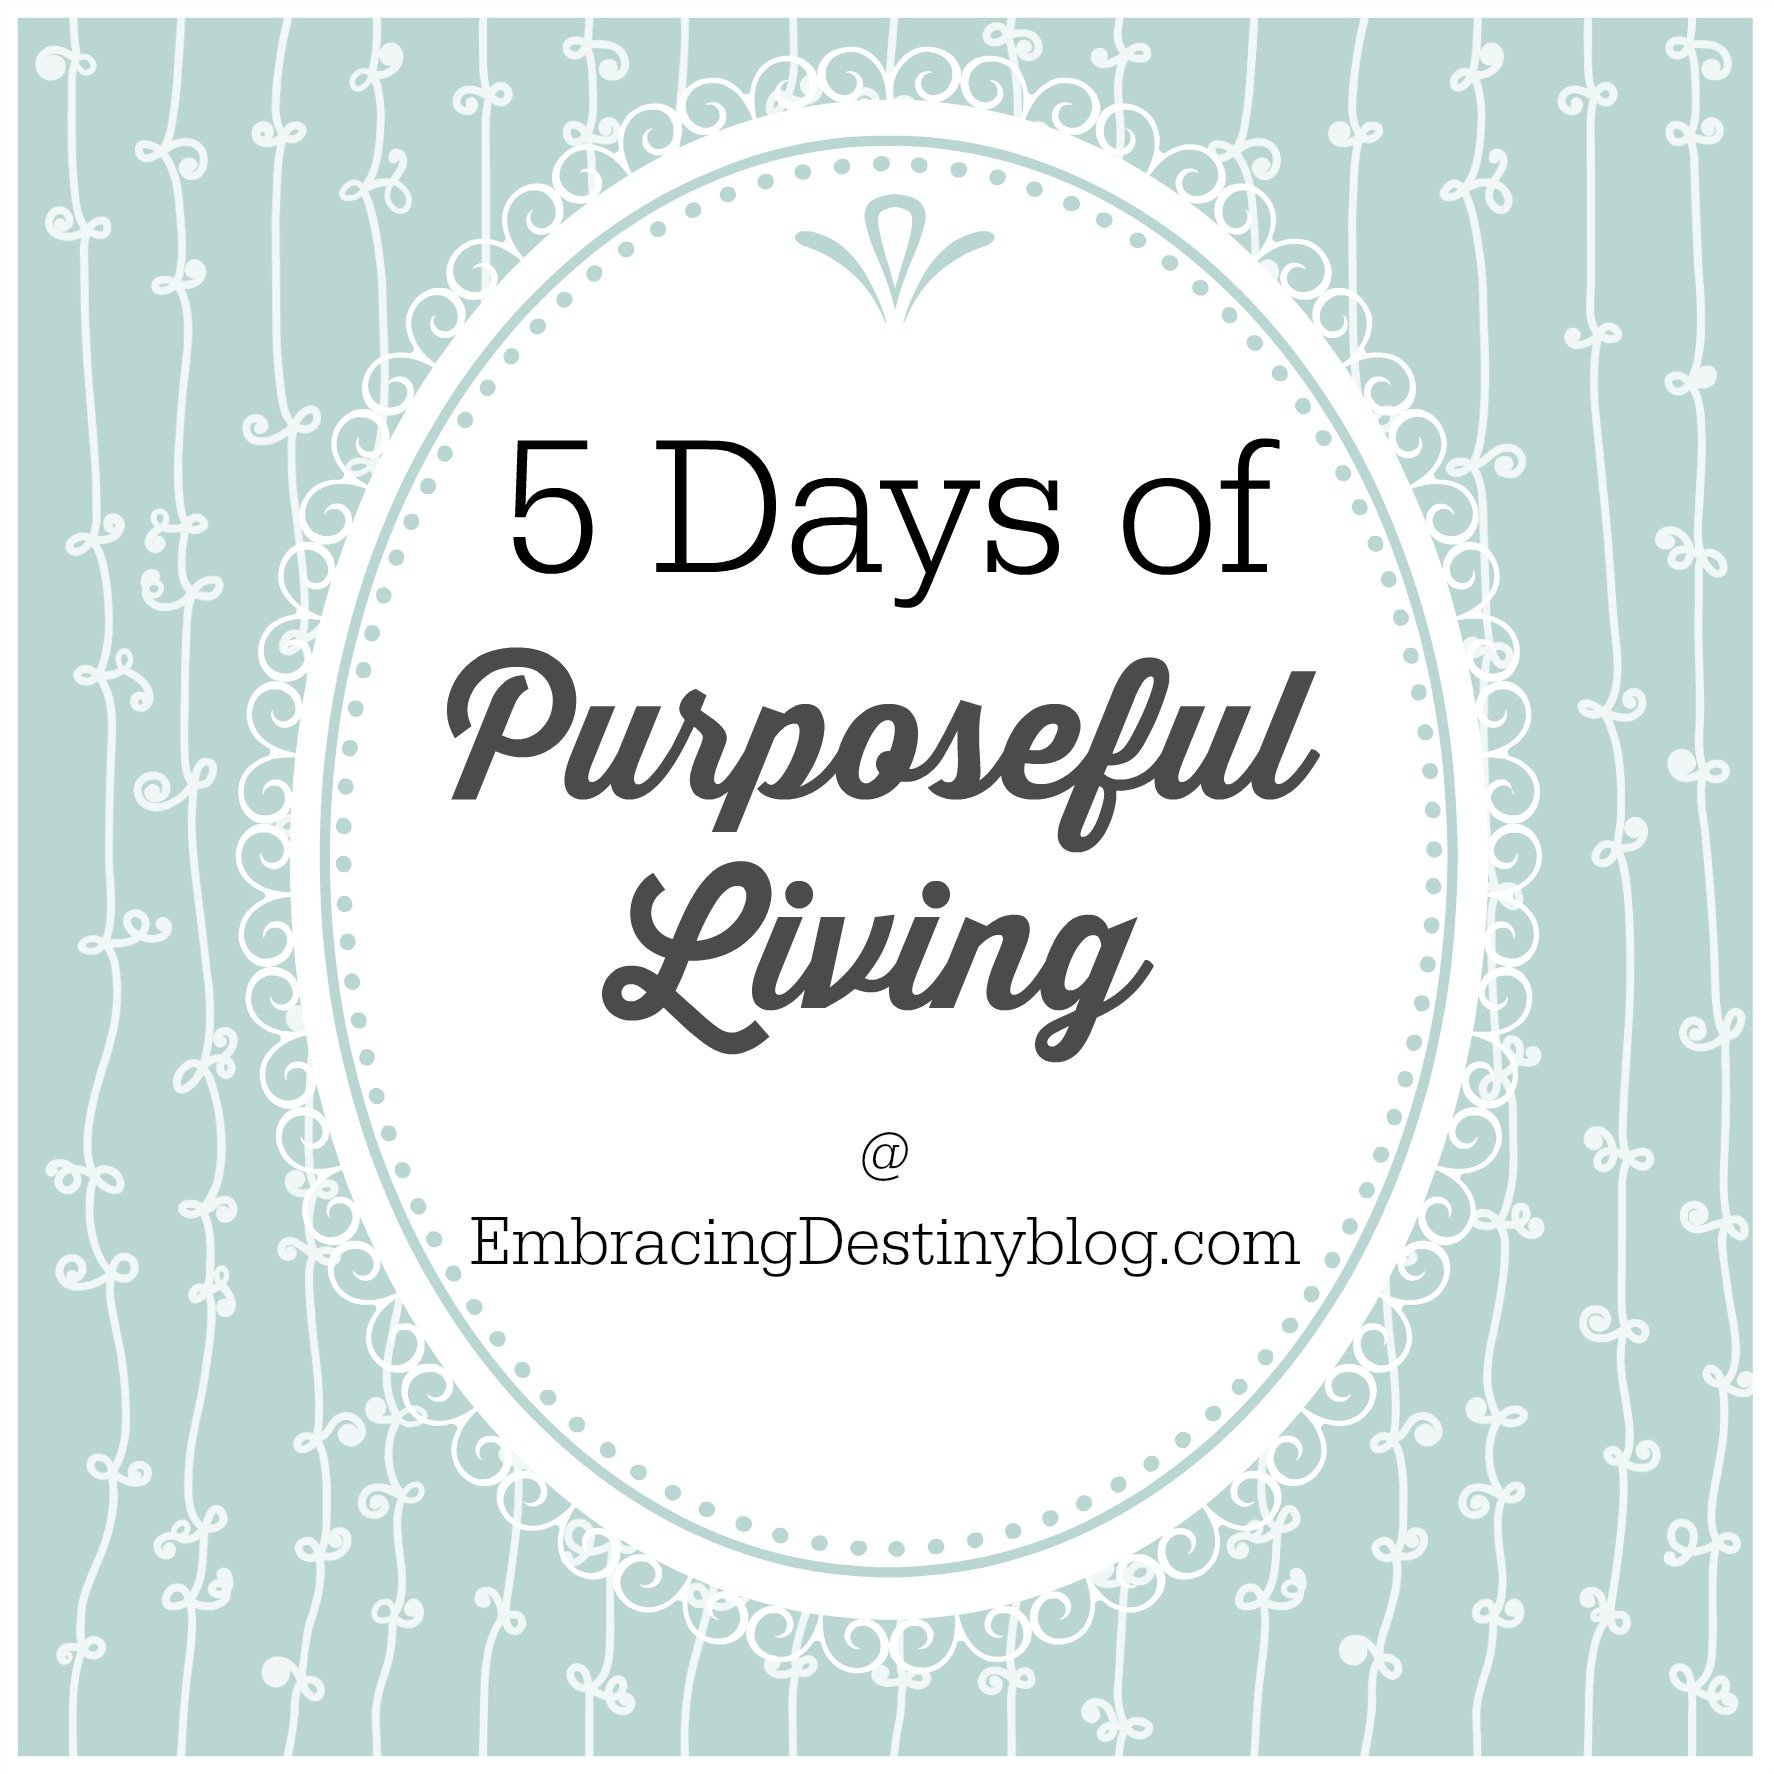 5 Days of Purposeful Living